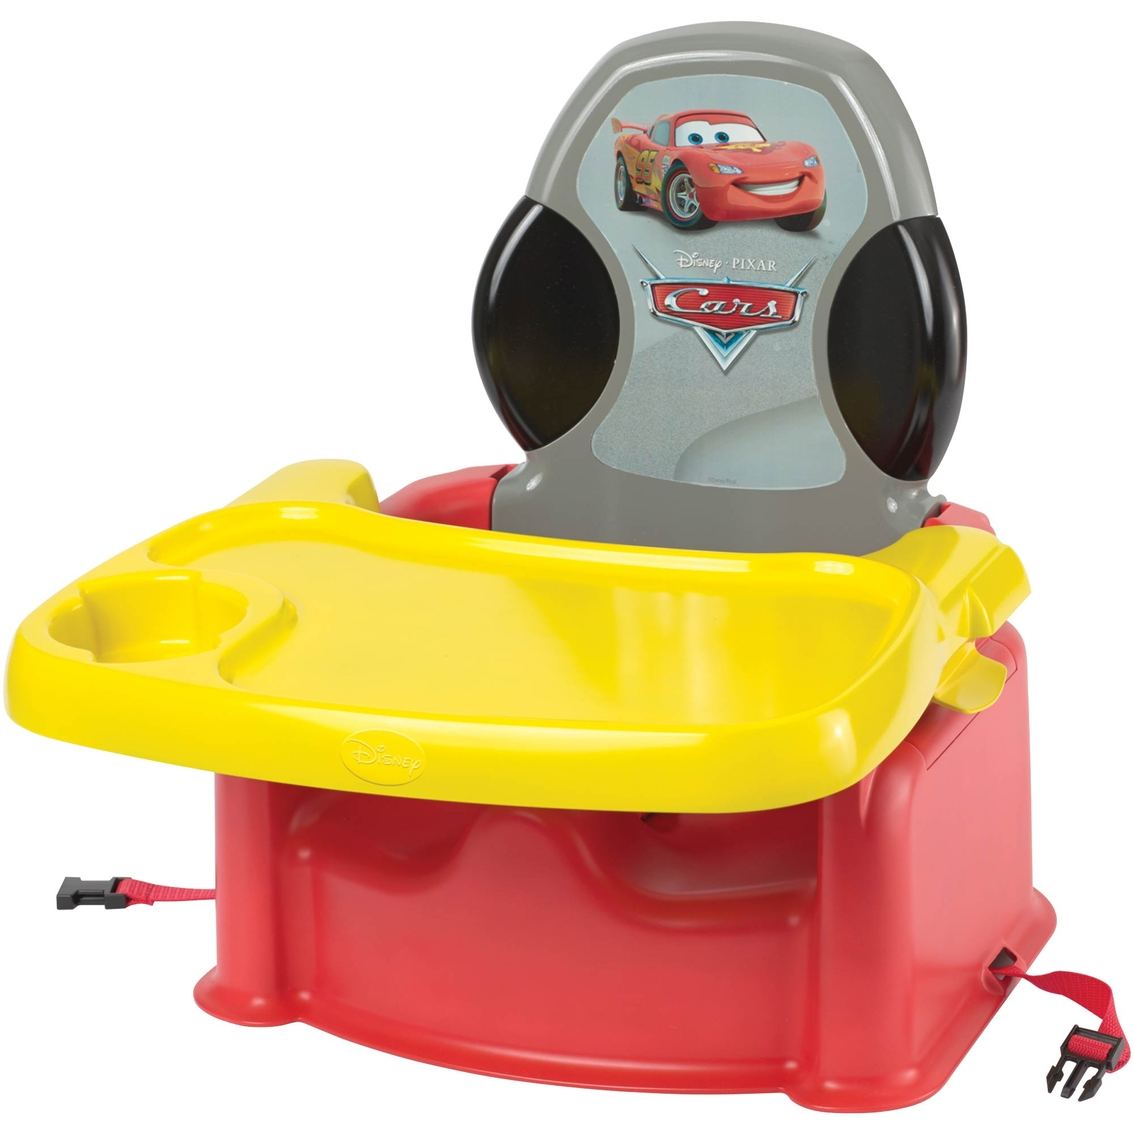 Booster High Chair Seat The First Years Disney Pixar Cars Booster Seat Booster Seats